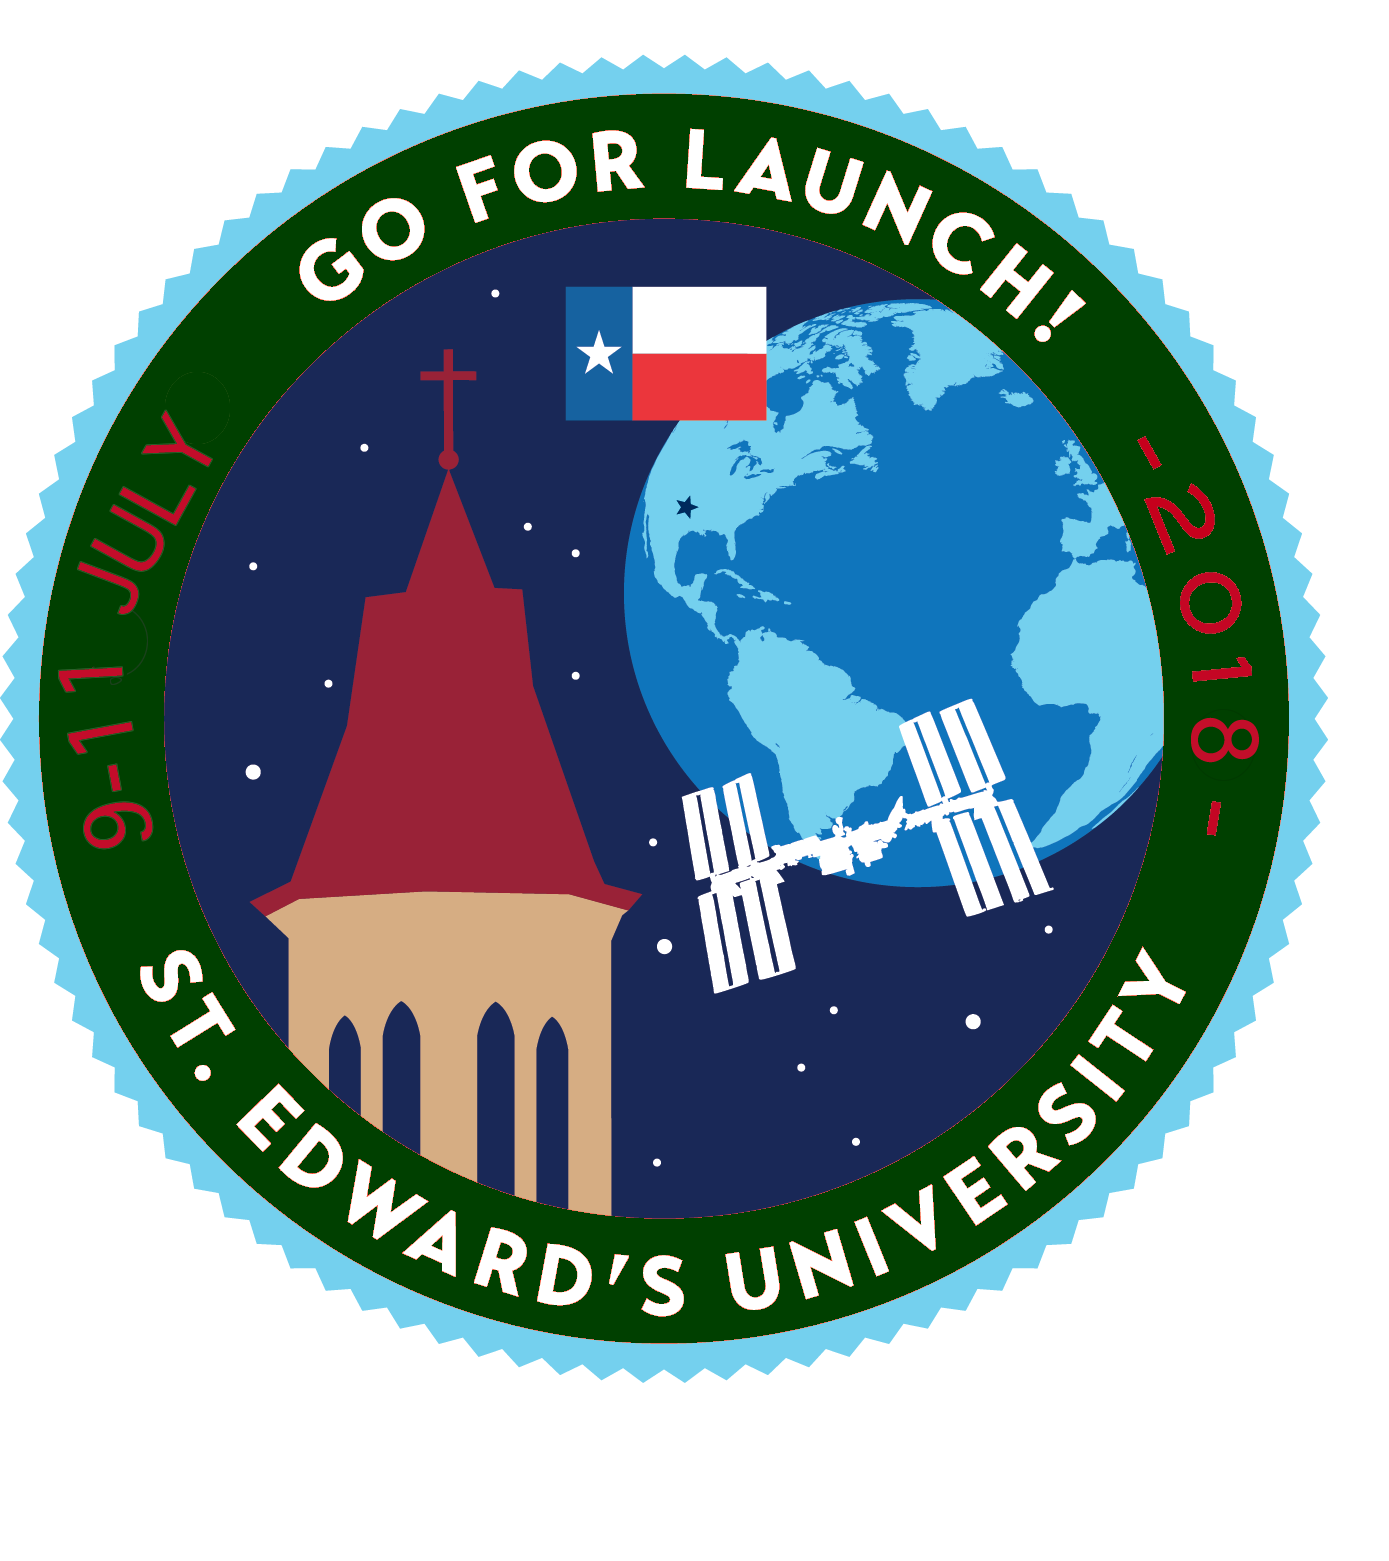 Go for launch higher. Galaxy clipart space center